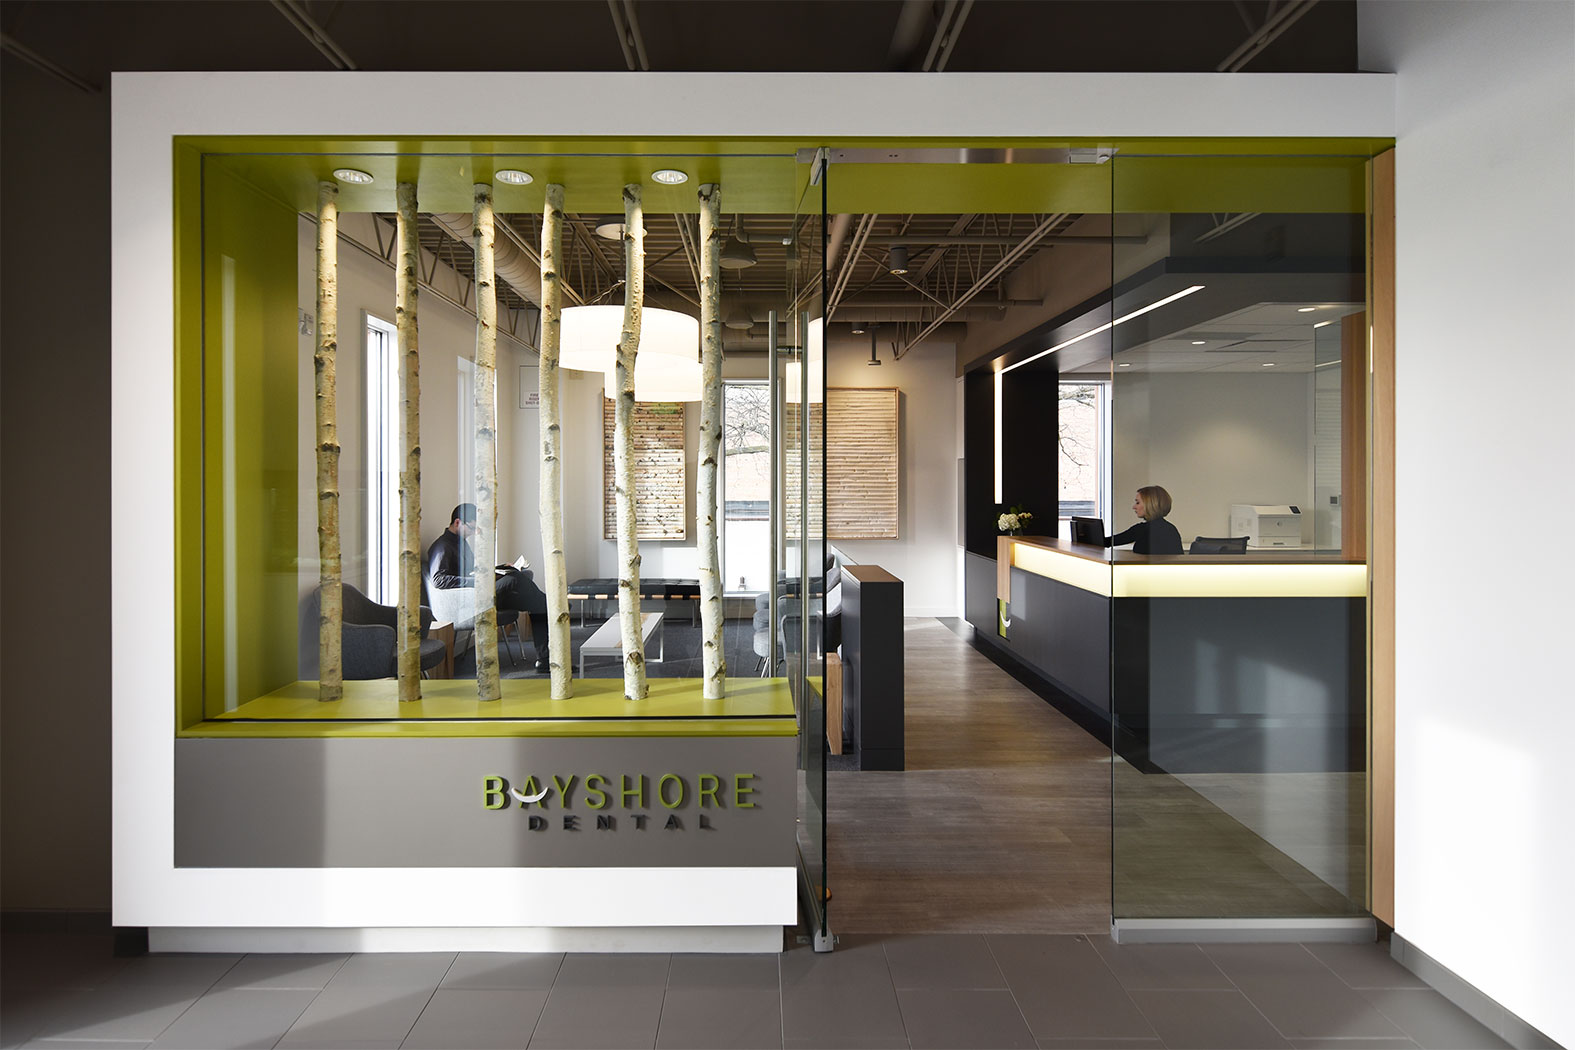 AIA selects winners of Healthcare Design Awards | Health Facilities